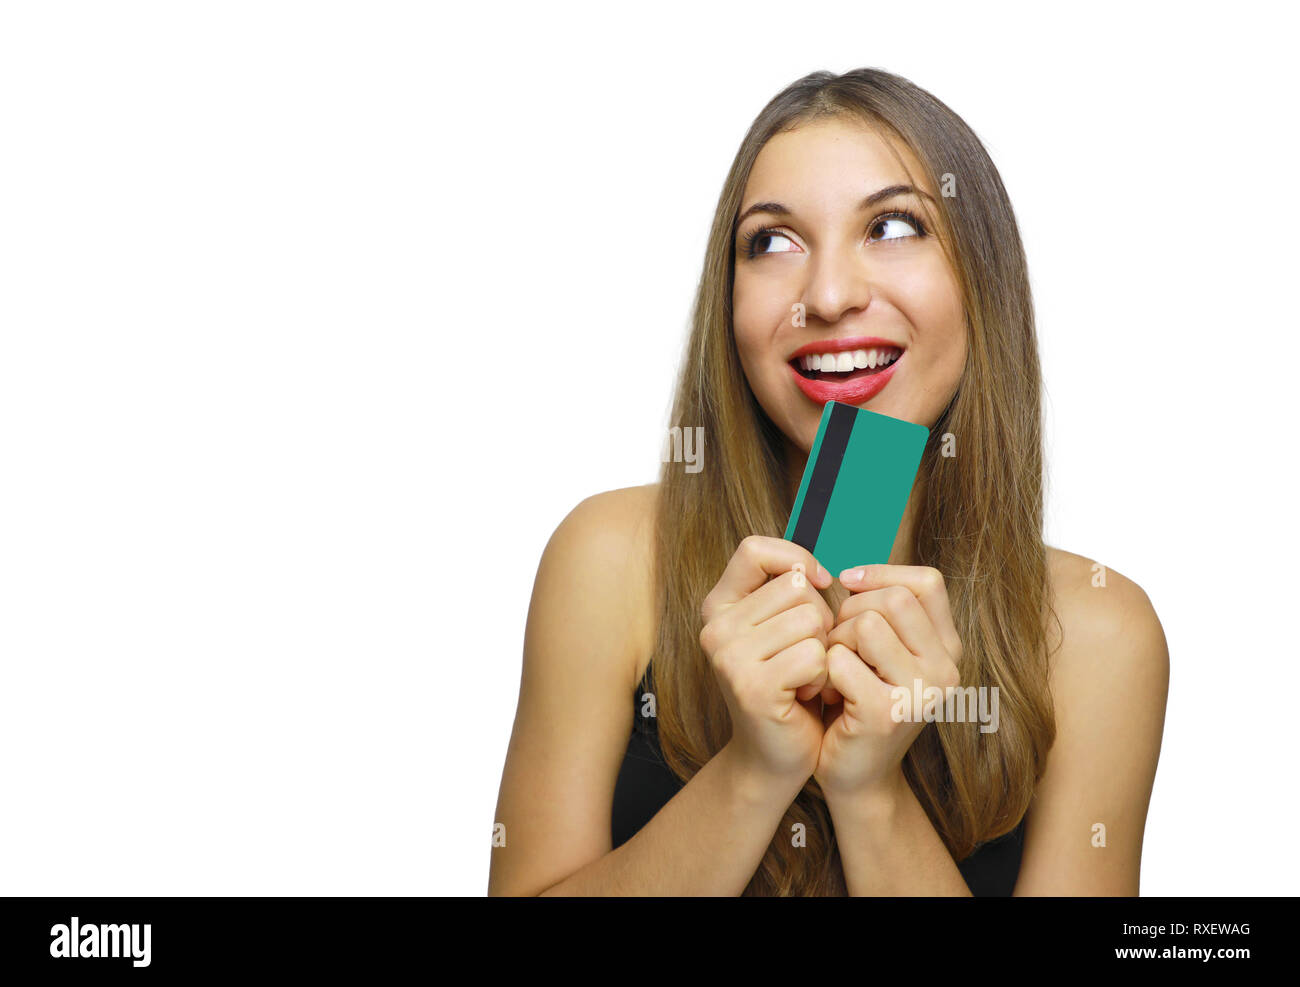 Pleased intrigued brunette woman in black dress holding credit card and looking away over white background - Stock Image